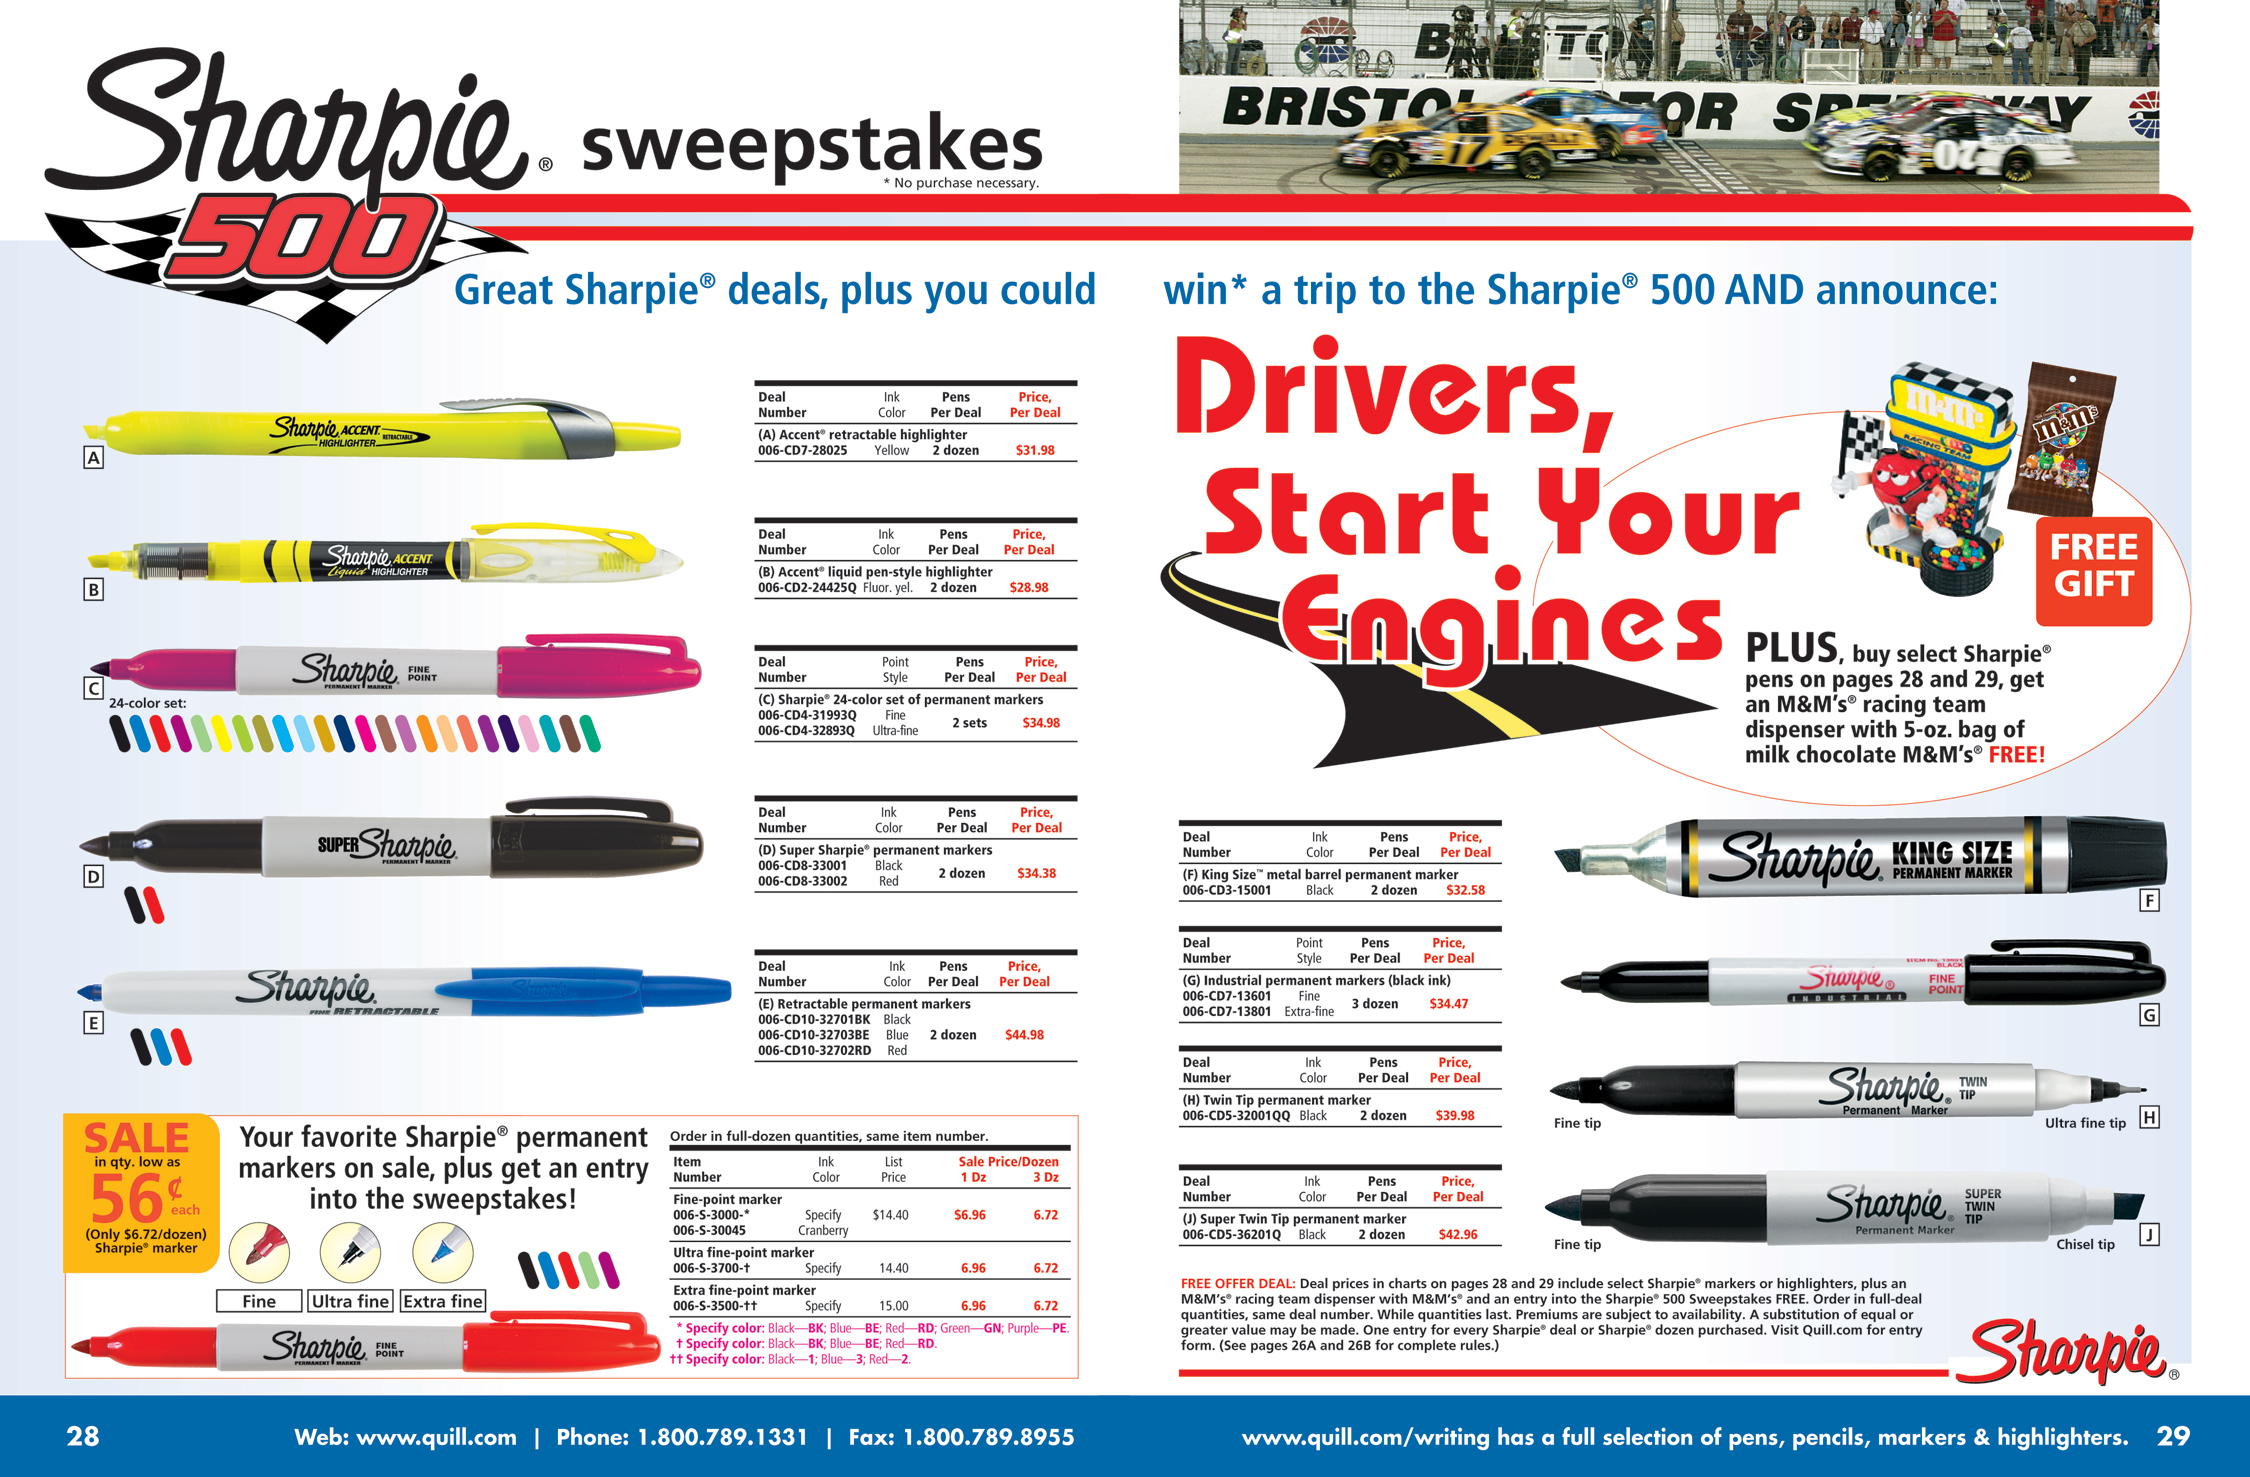 Sharpie Sweepstakes Spread